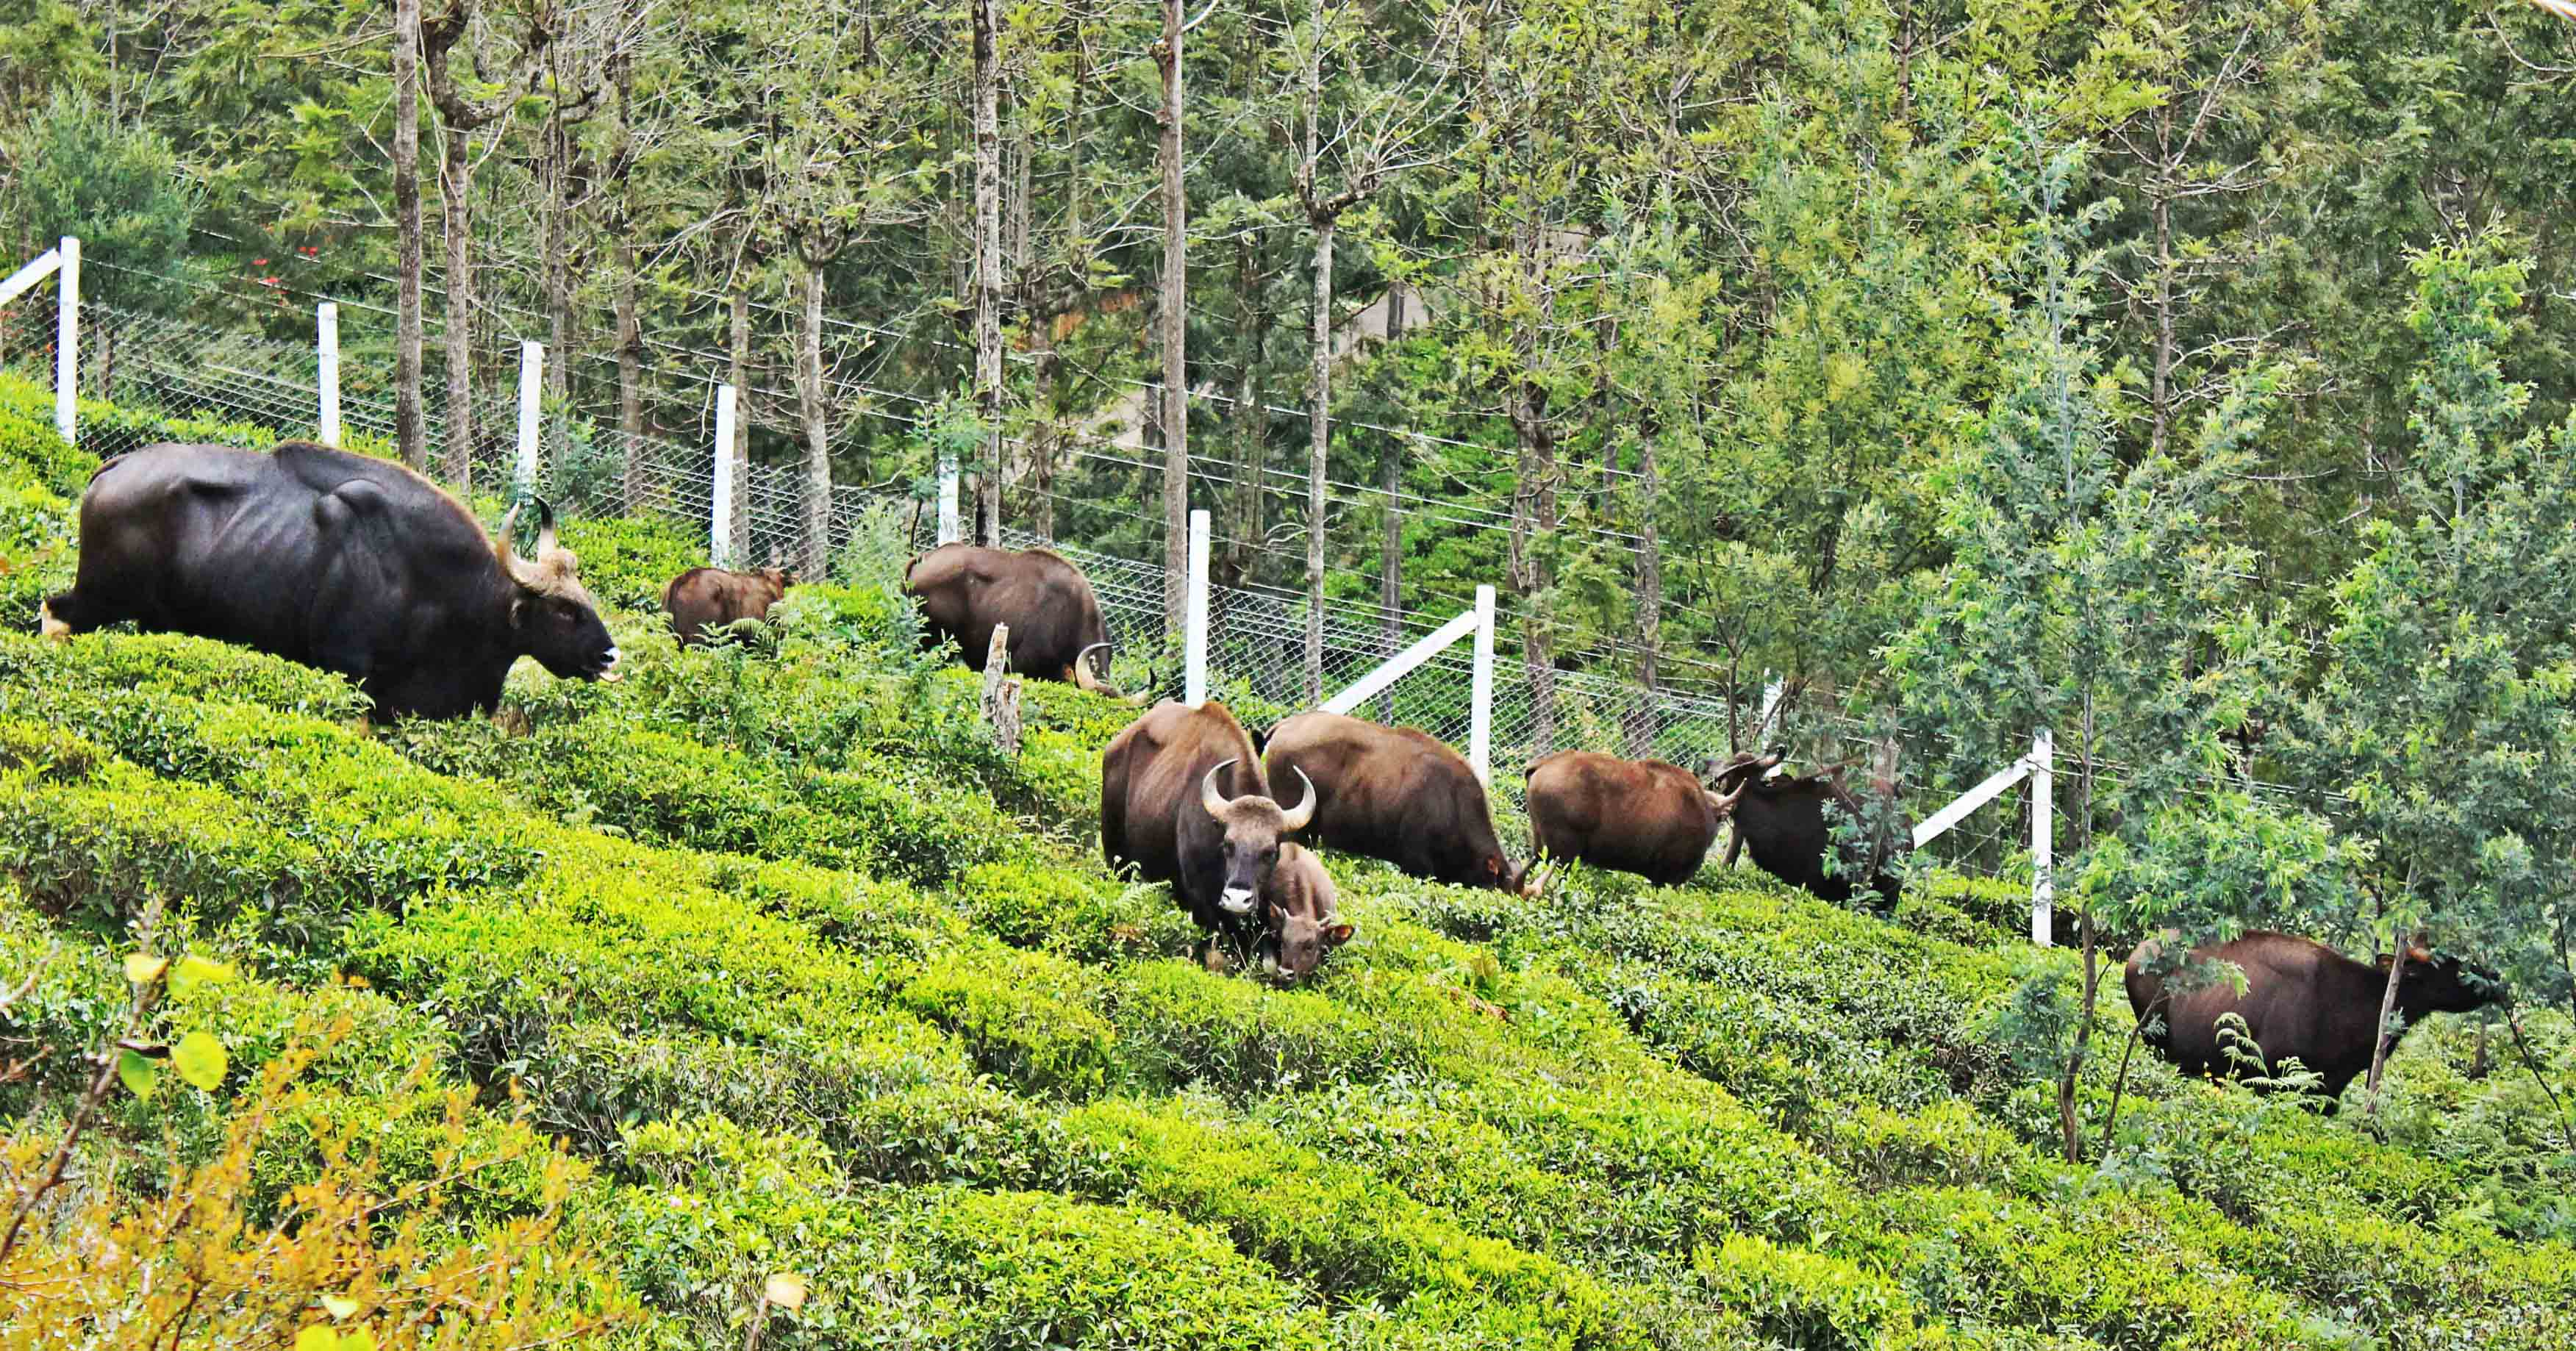 preempting conflict humangaur interactions in the nilgiris